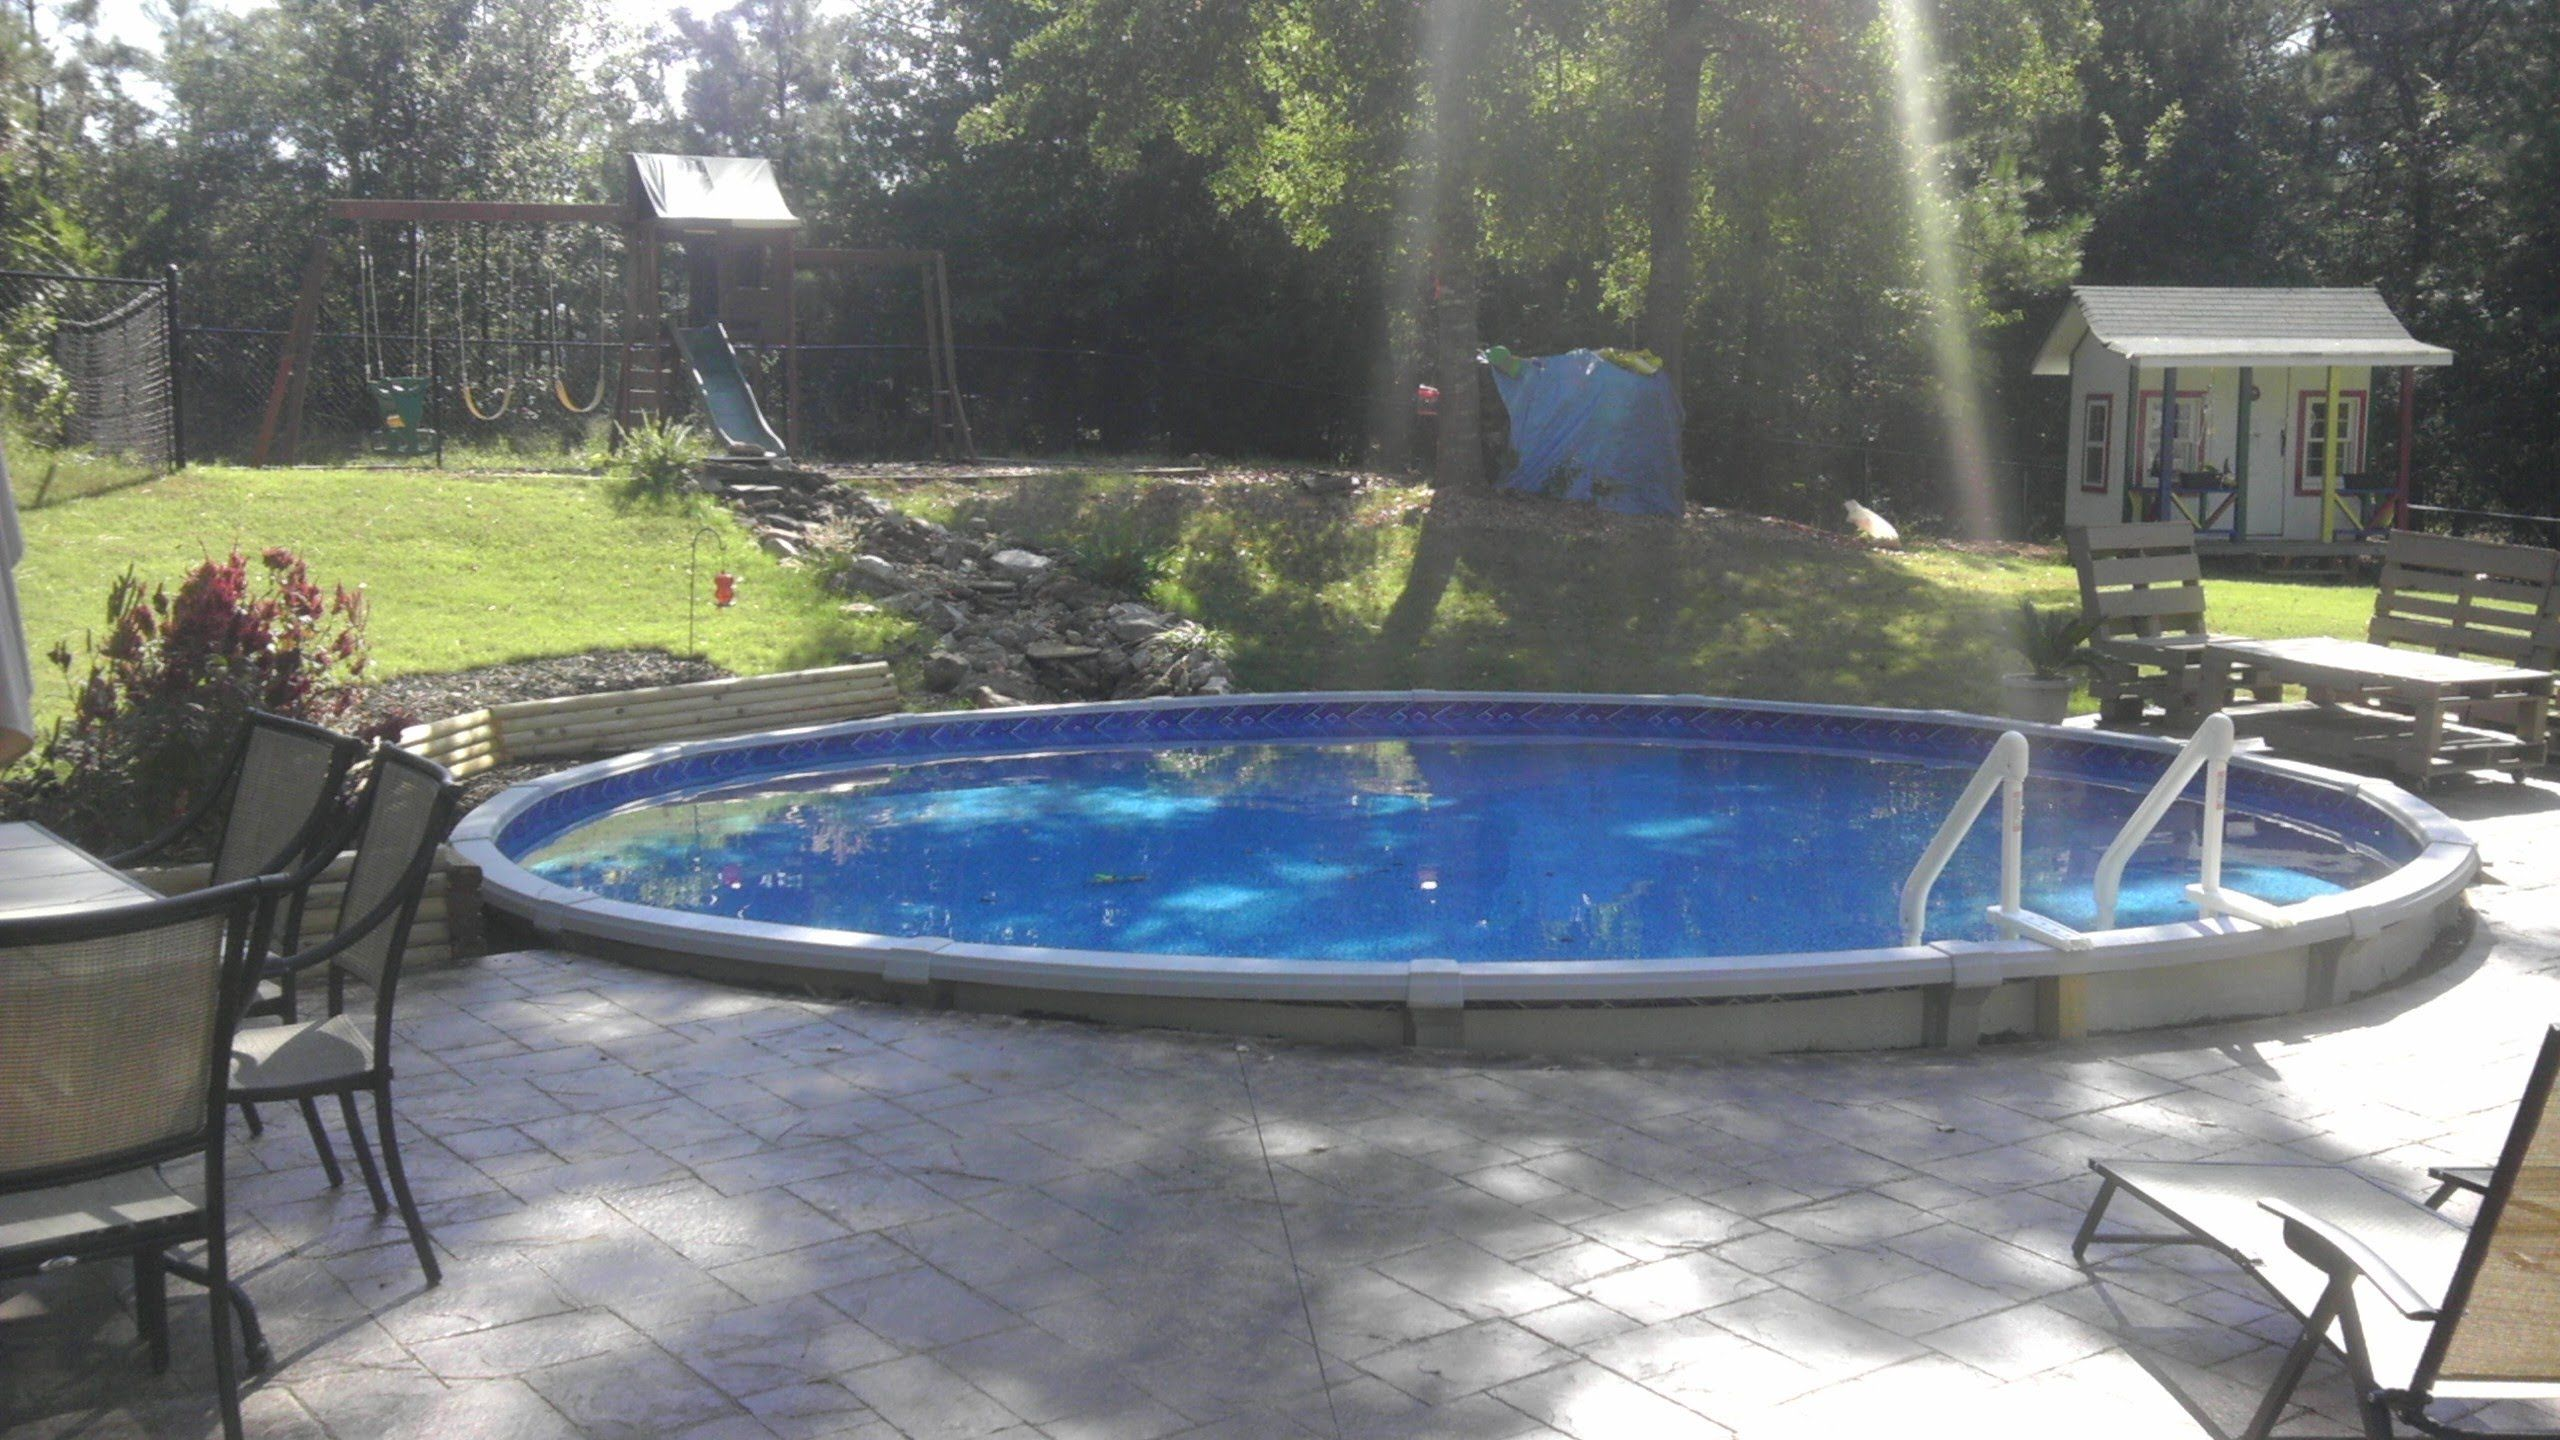 Cash Pool Celle Landscaping Do 39s And Don 39ts For Your Above Ground Pool